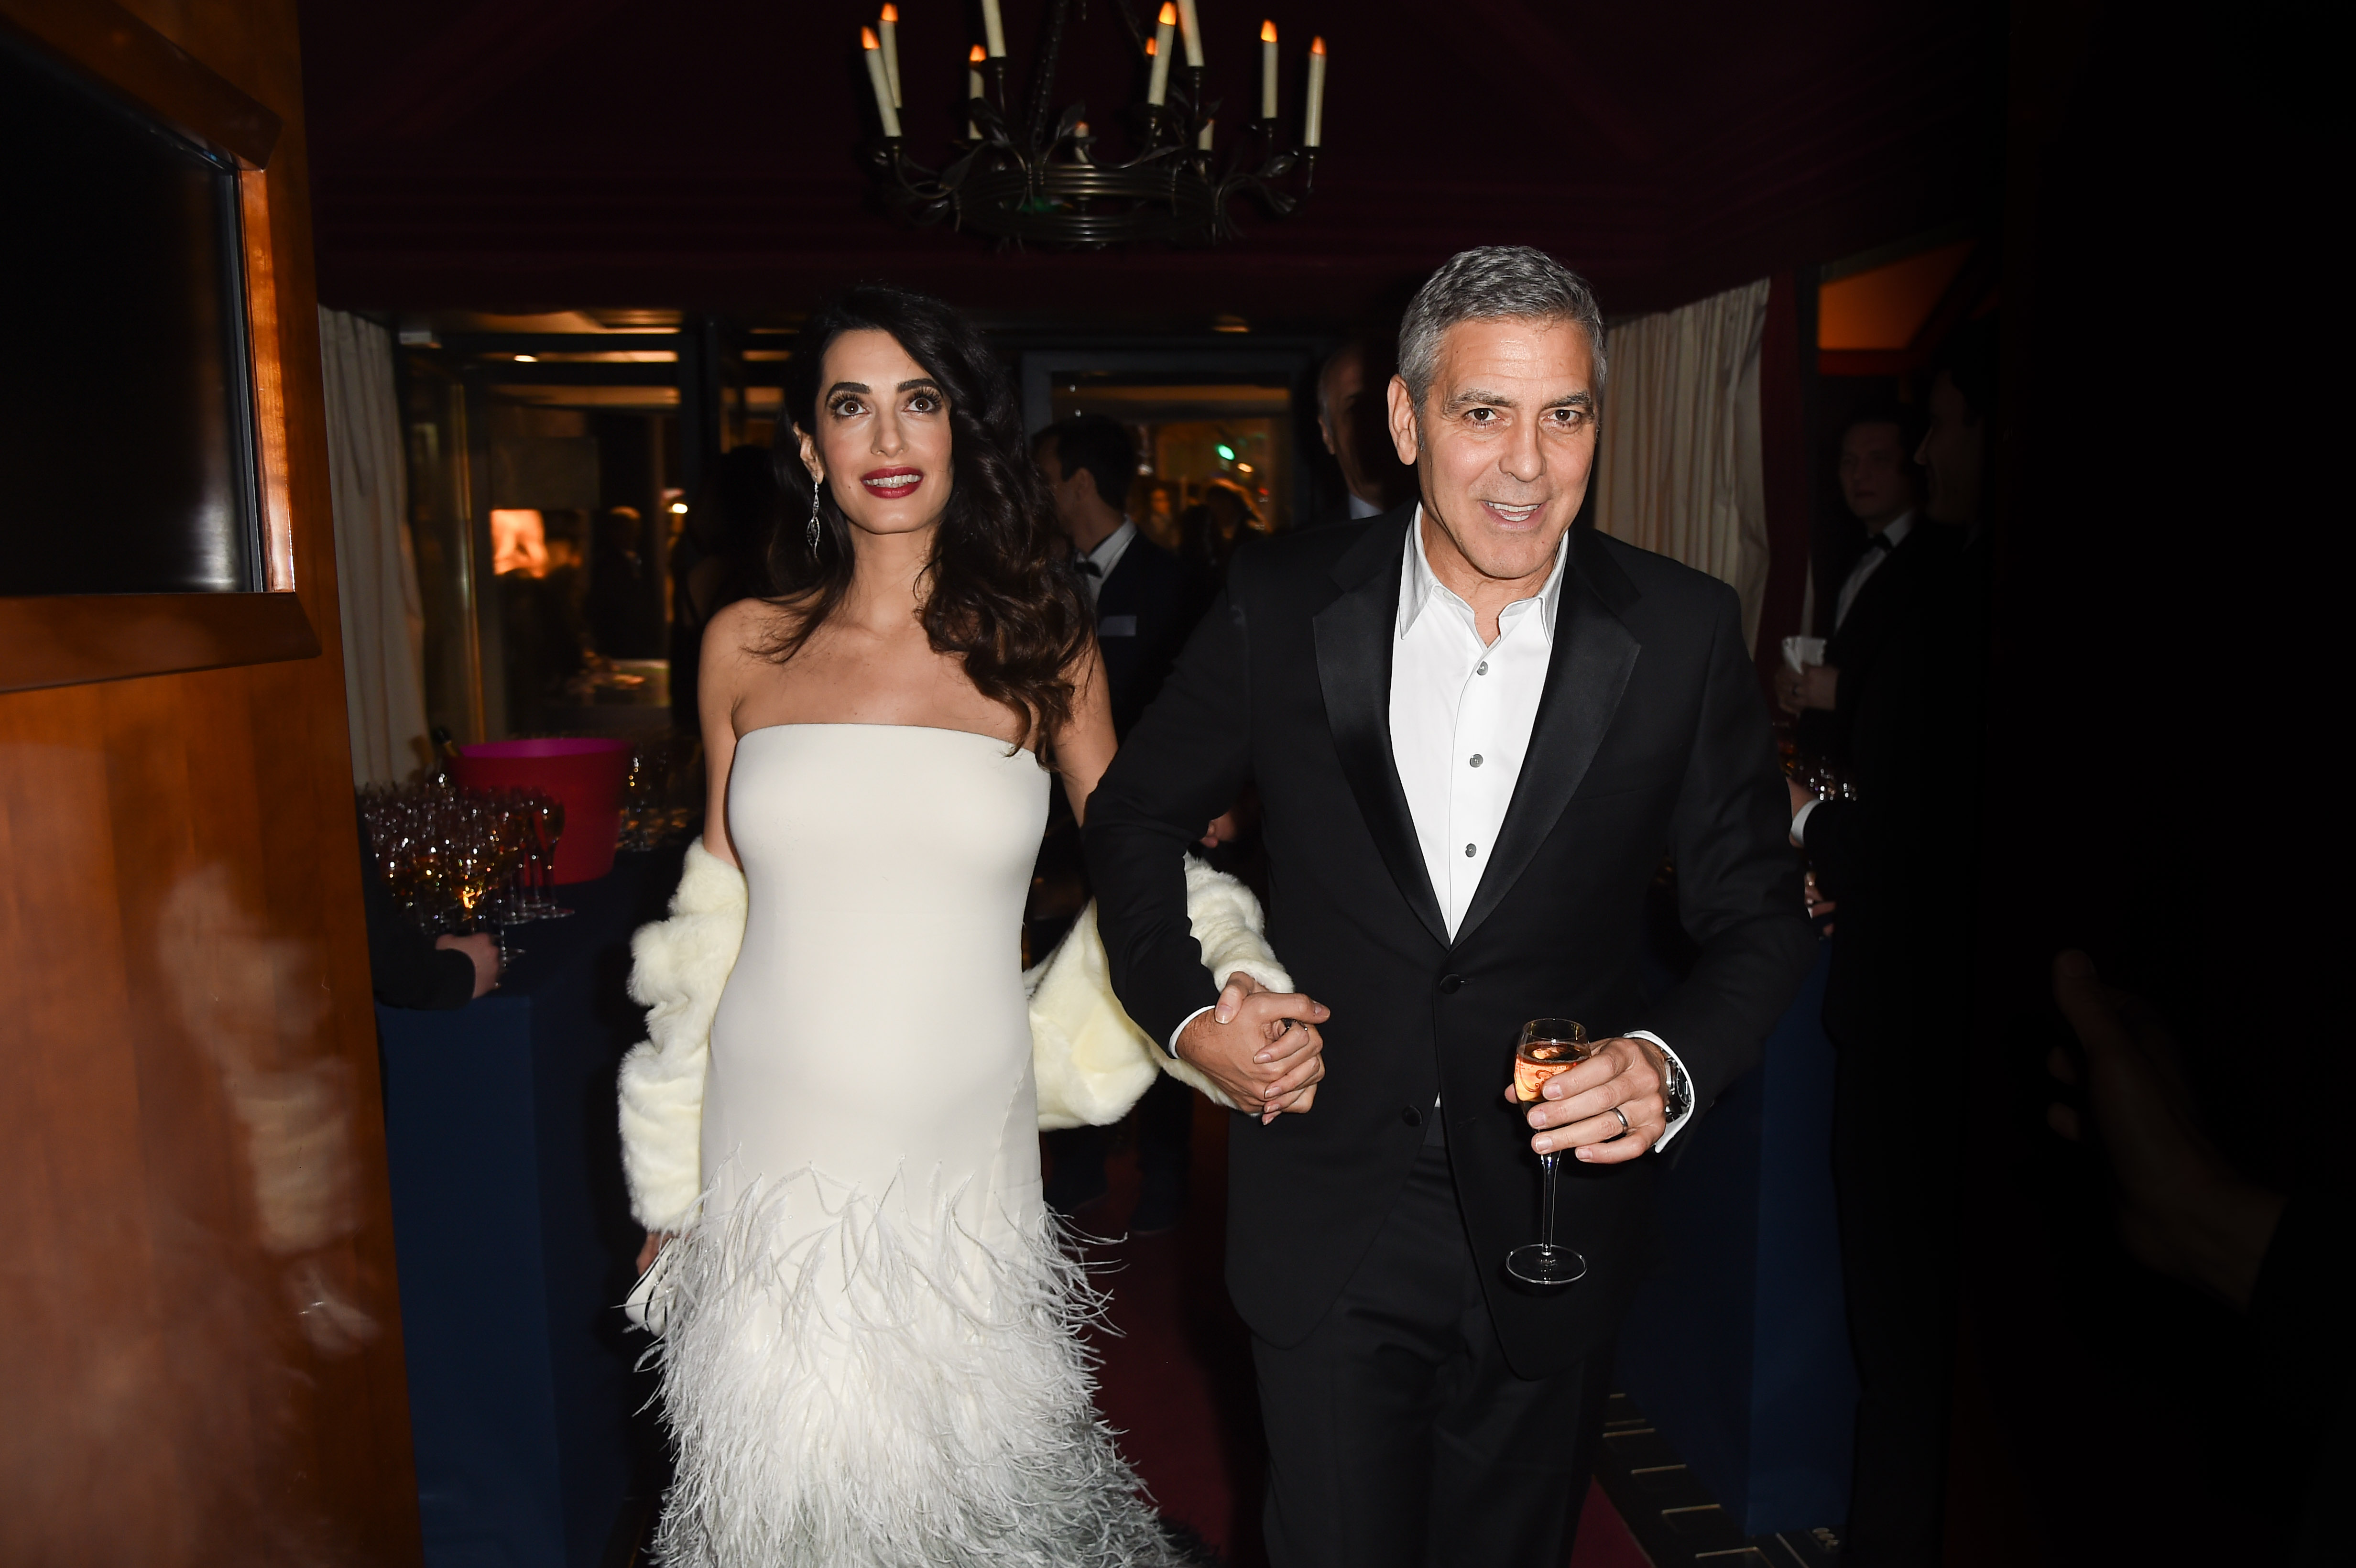 George Clooney and Amal Clooney attend the Cesar Dinner at Le Fouquet's on February 24, 2017 in Paris, France.